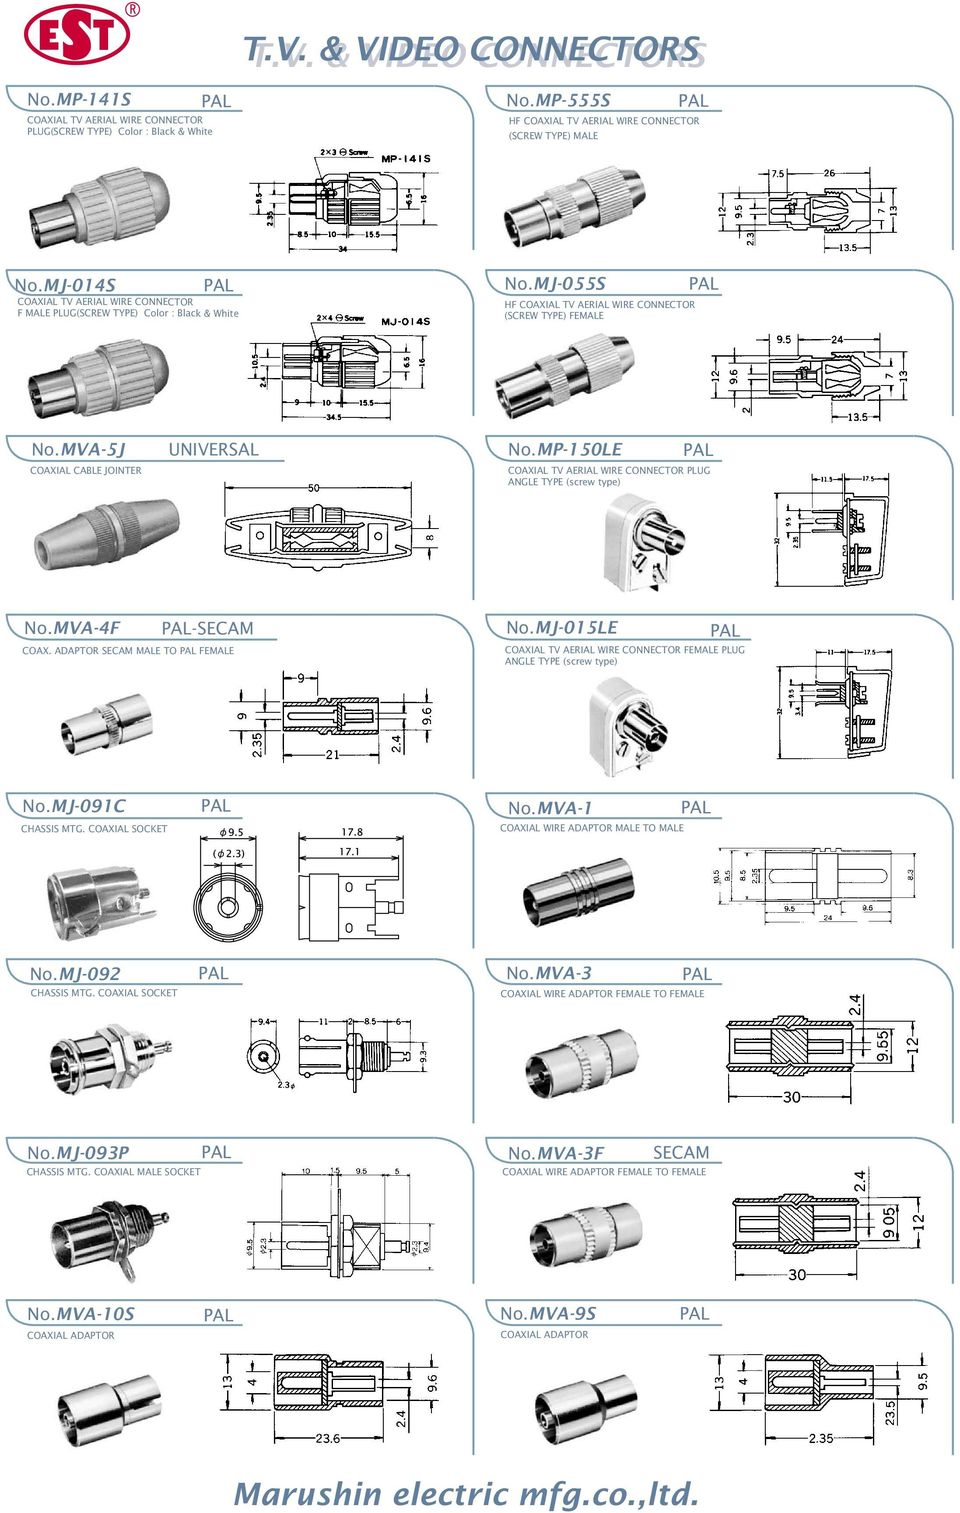 Tv Video Connectors Pdf Coaxial Socket Wiring Diagram Mj 015le Female Plug Angle Type Screw Nomj 091c